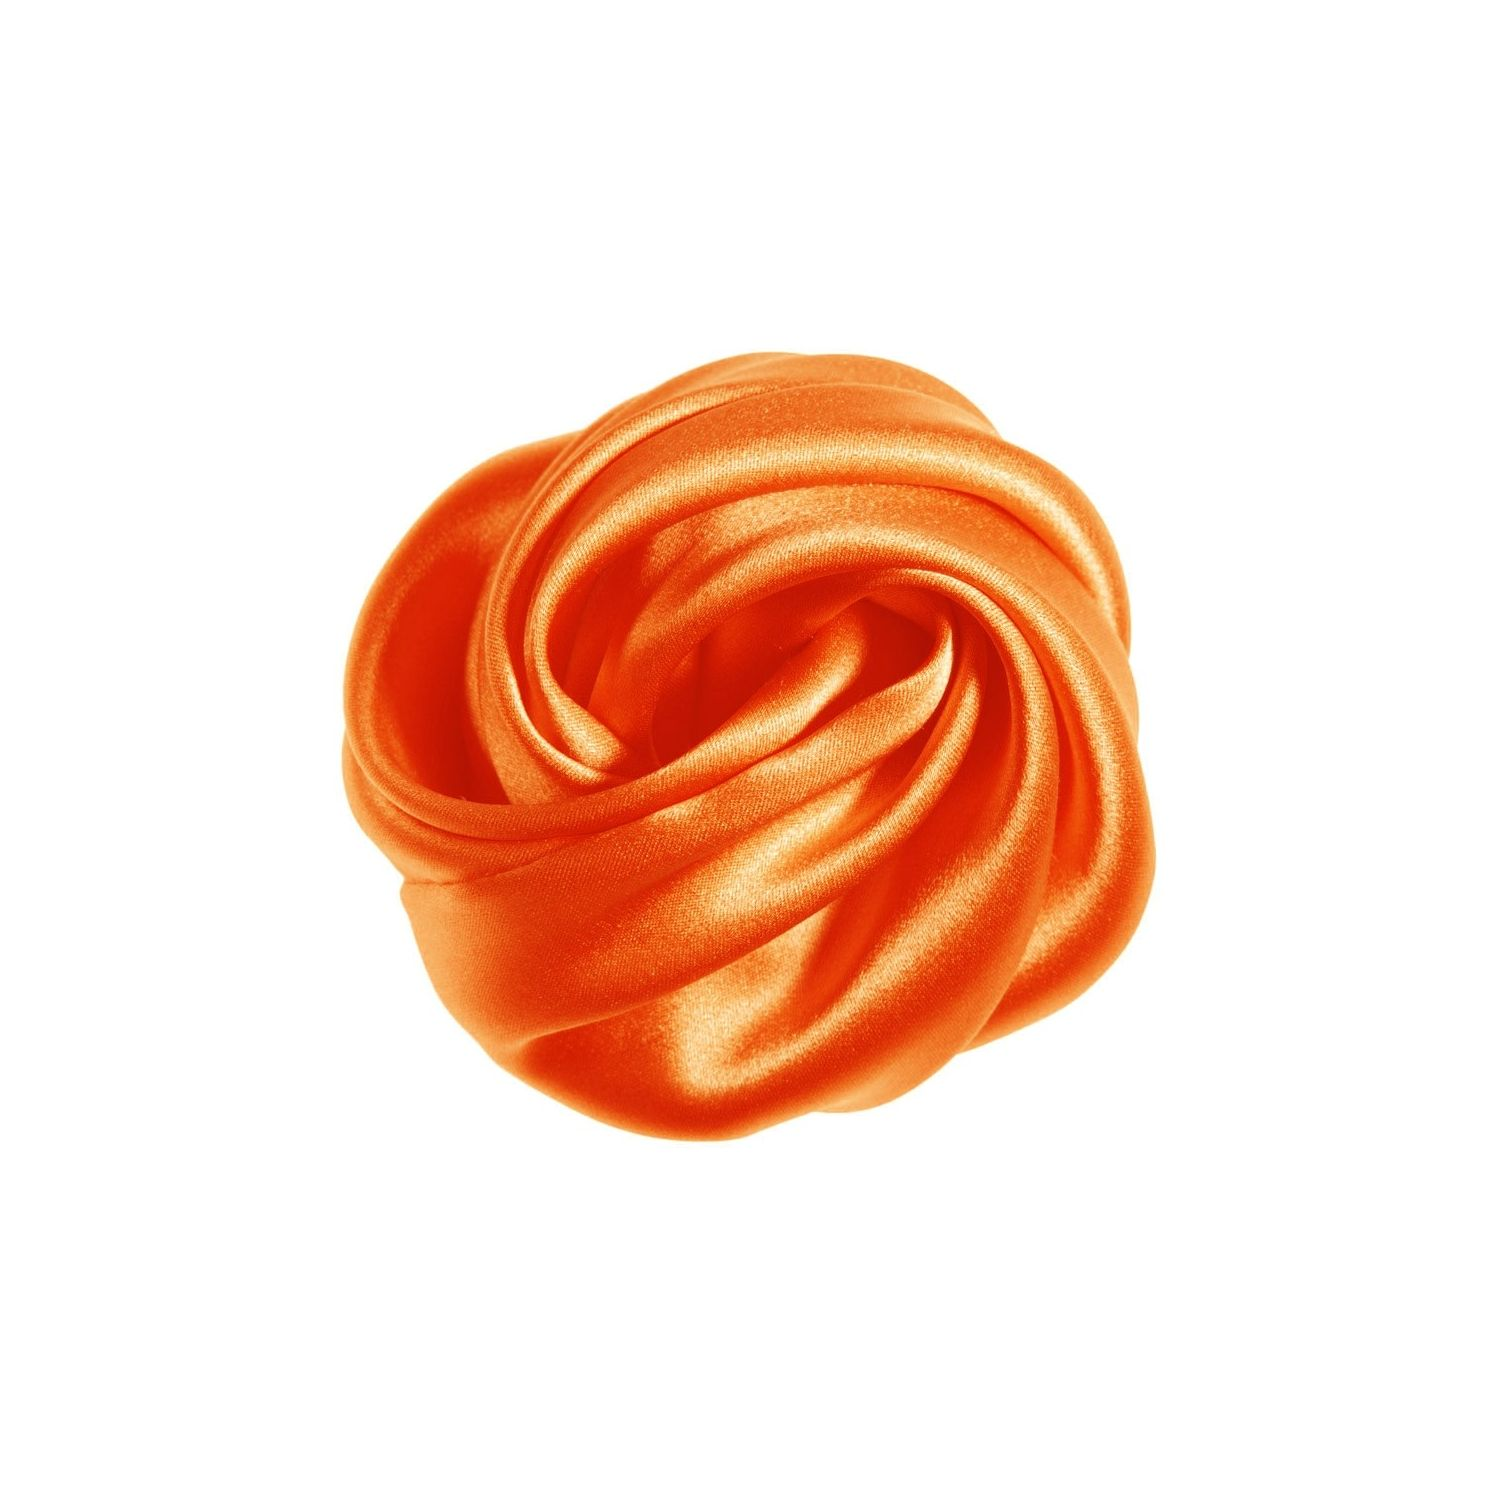 Hair rose mandarin